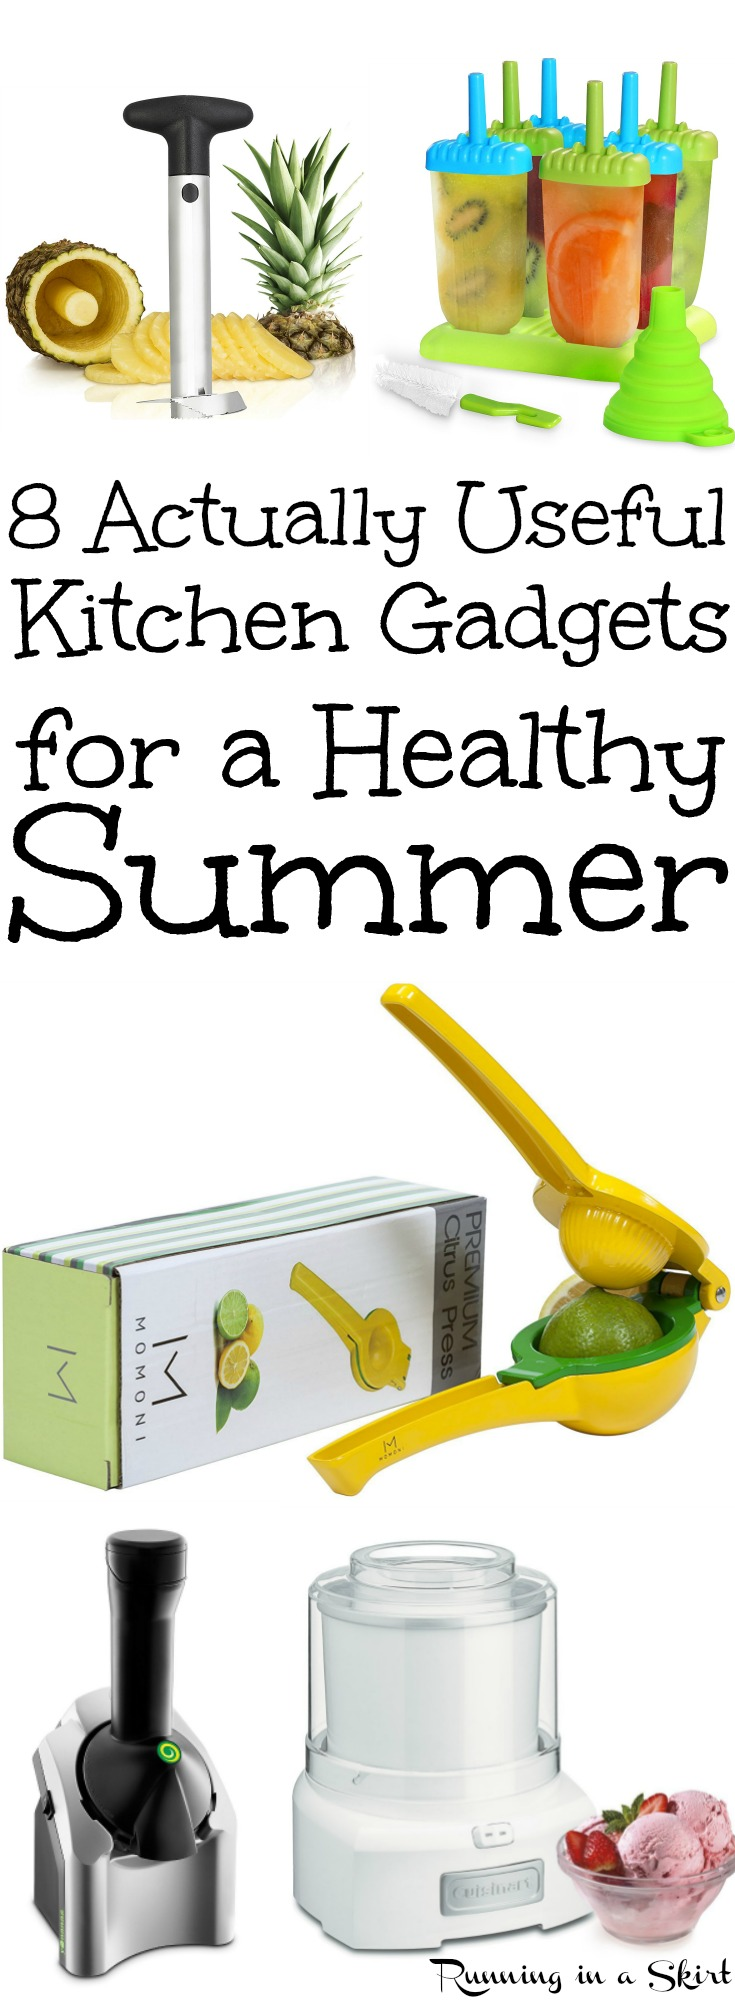 8 Actually Useful Must Have Summer Kitchen Gadgets and Gizmos.  Unique and useful ways to fill your cabinets with the best awesome accessories to help you cook healthy.  Amazing, clever and handy ideas / products for life and cooking.. for Men or for Moms.  Great gifts for cooks!/ Running in a Skirt via @juliewunder